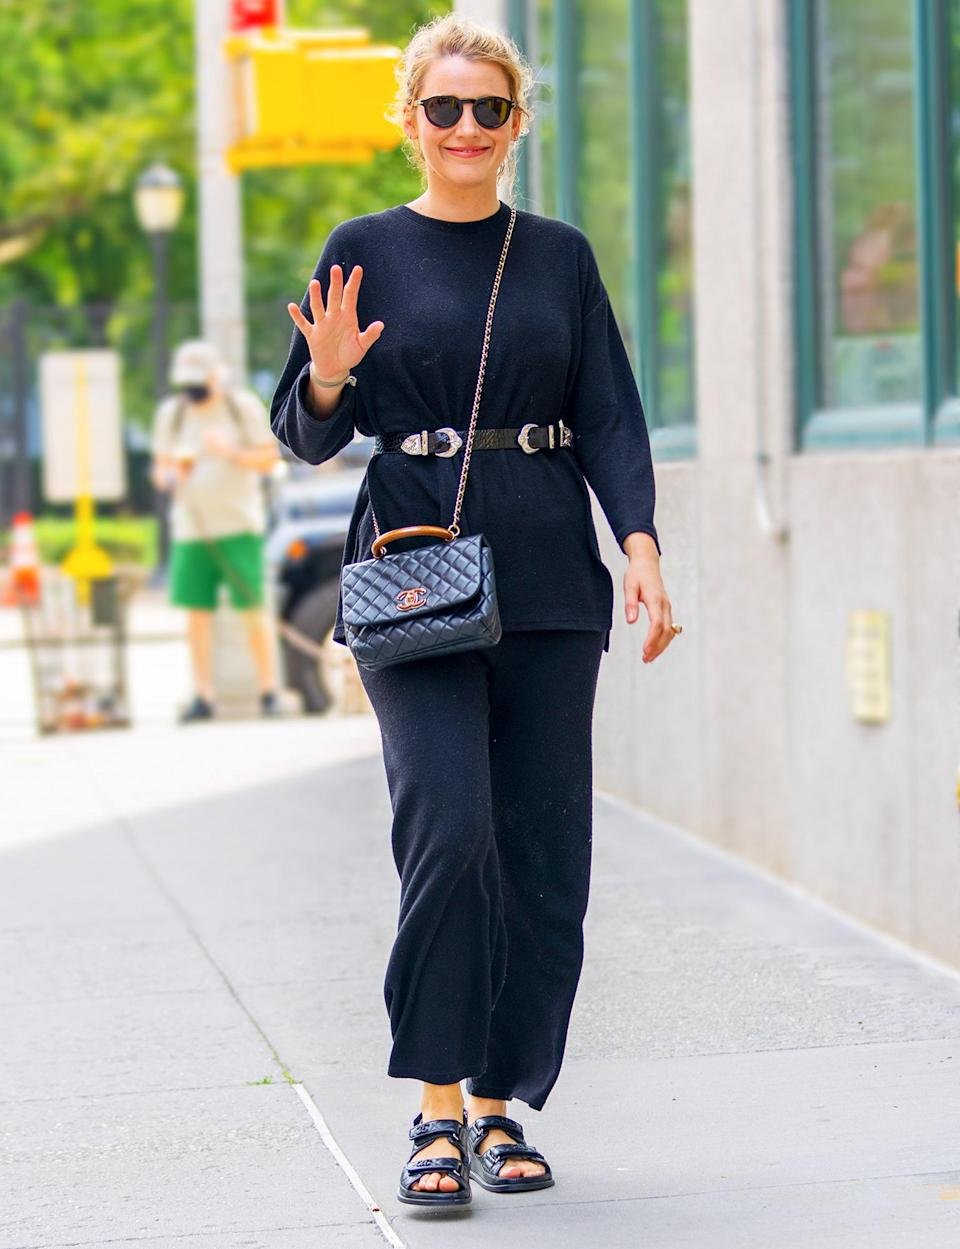 <p>Blake Lively waves hello as she takes a stroll through N.Y.C. on July 15.</p>